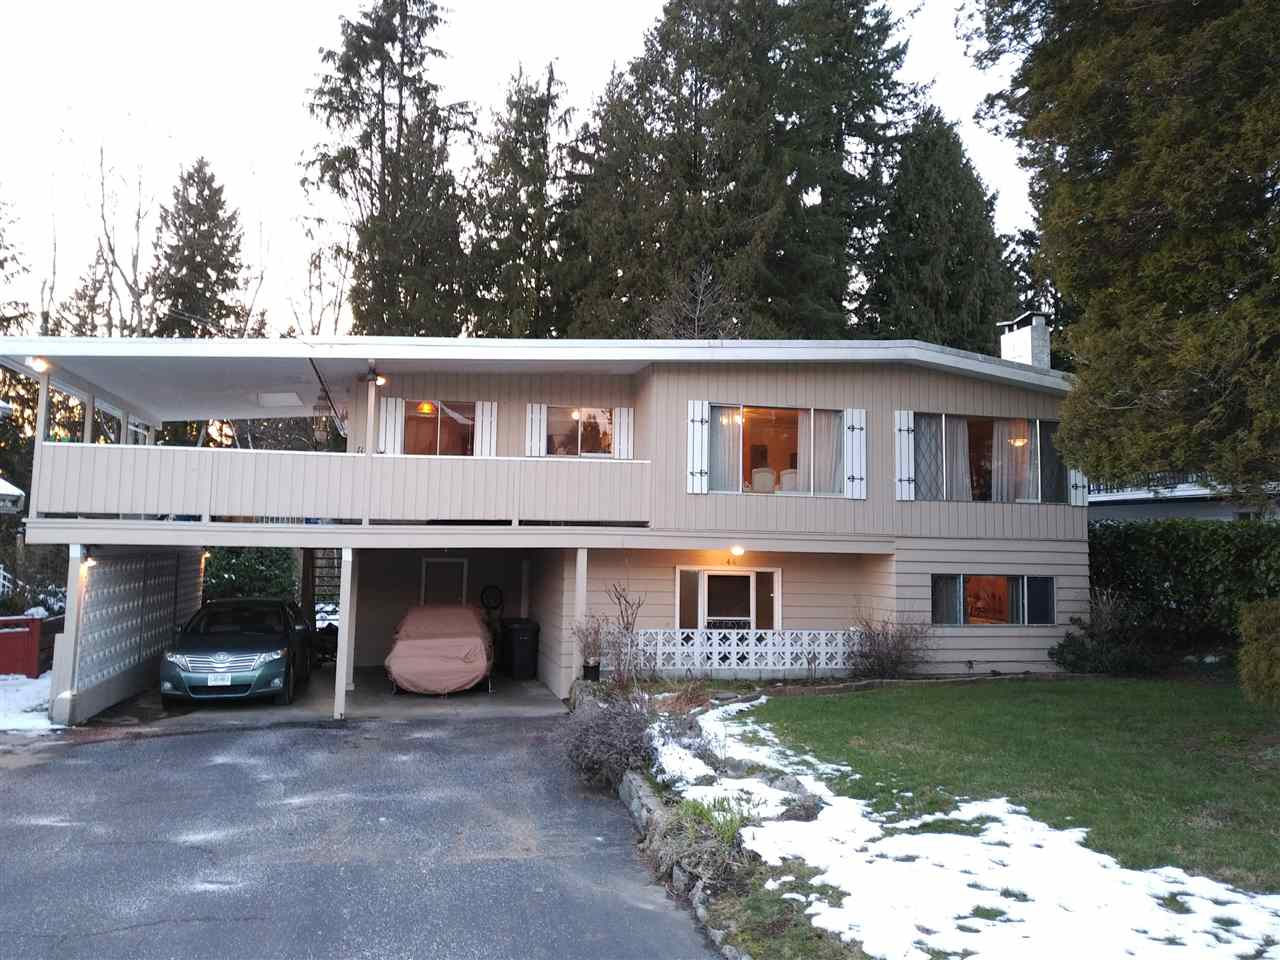 Main Photo: 444 GLENHOLME STREET in Coquitlam: Central Coquitlam House for sale : MLS®# R2243746